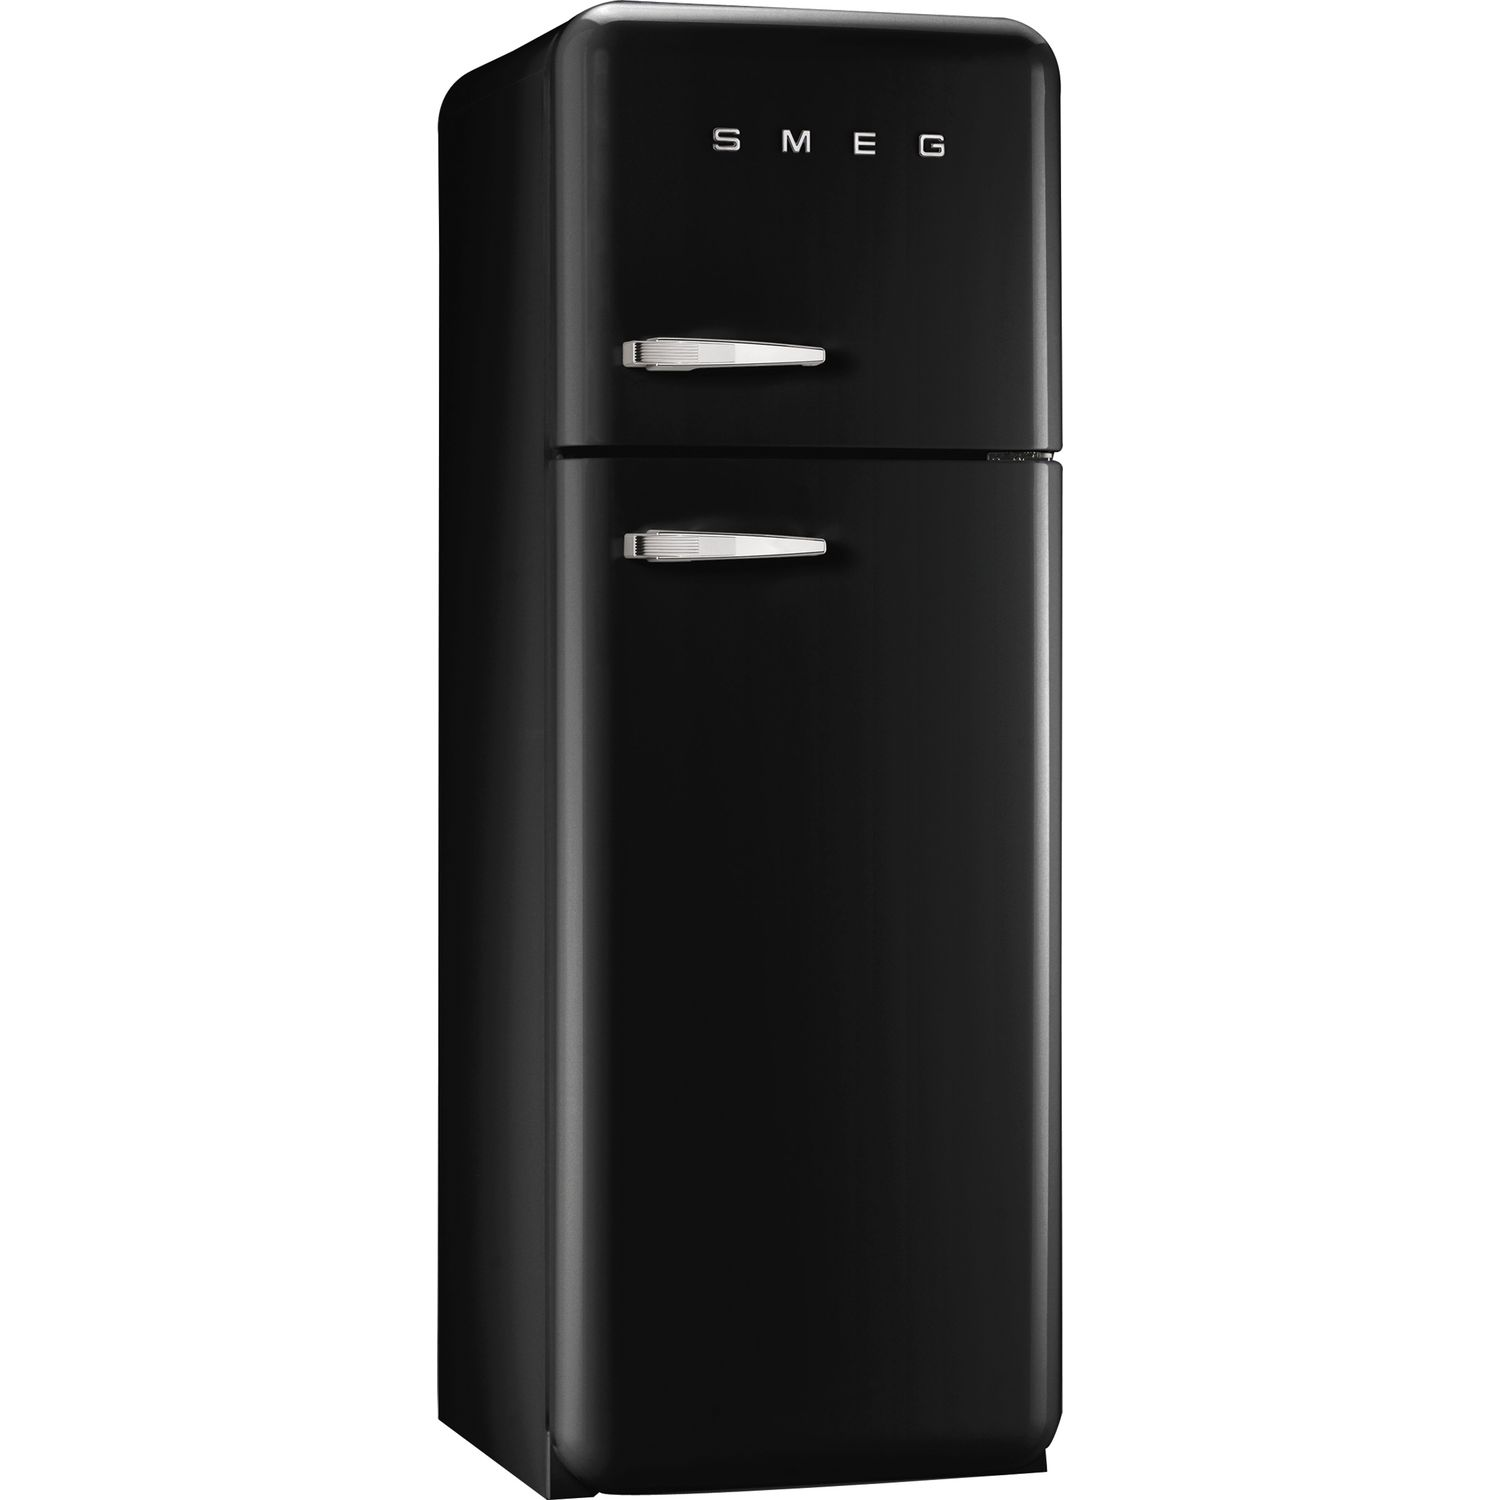 smeg standk hlschrank m gefrierraum fab30lne1 a schwarz linksanschlag. Black Bedroom Furniture Sets. Home Design Ideas